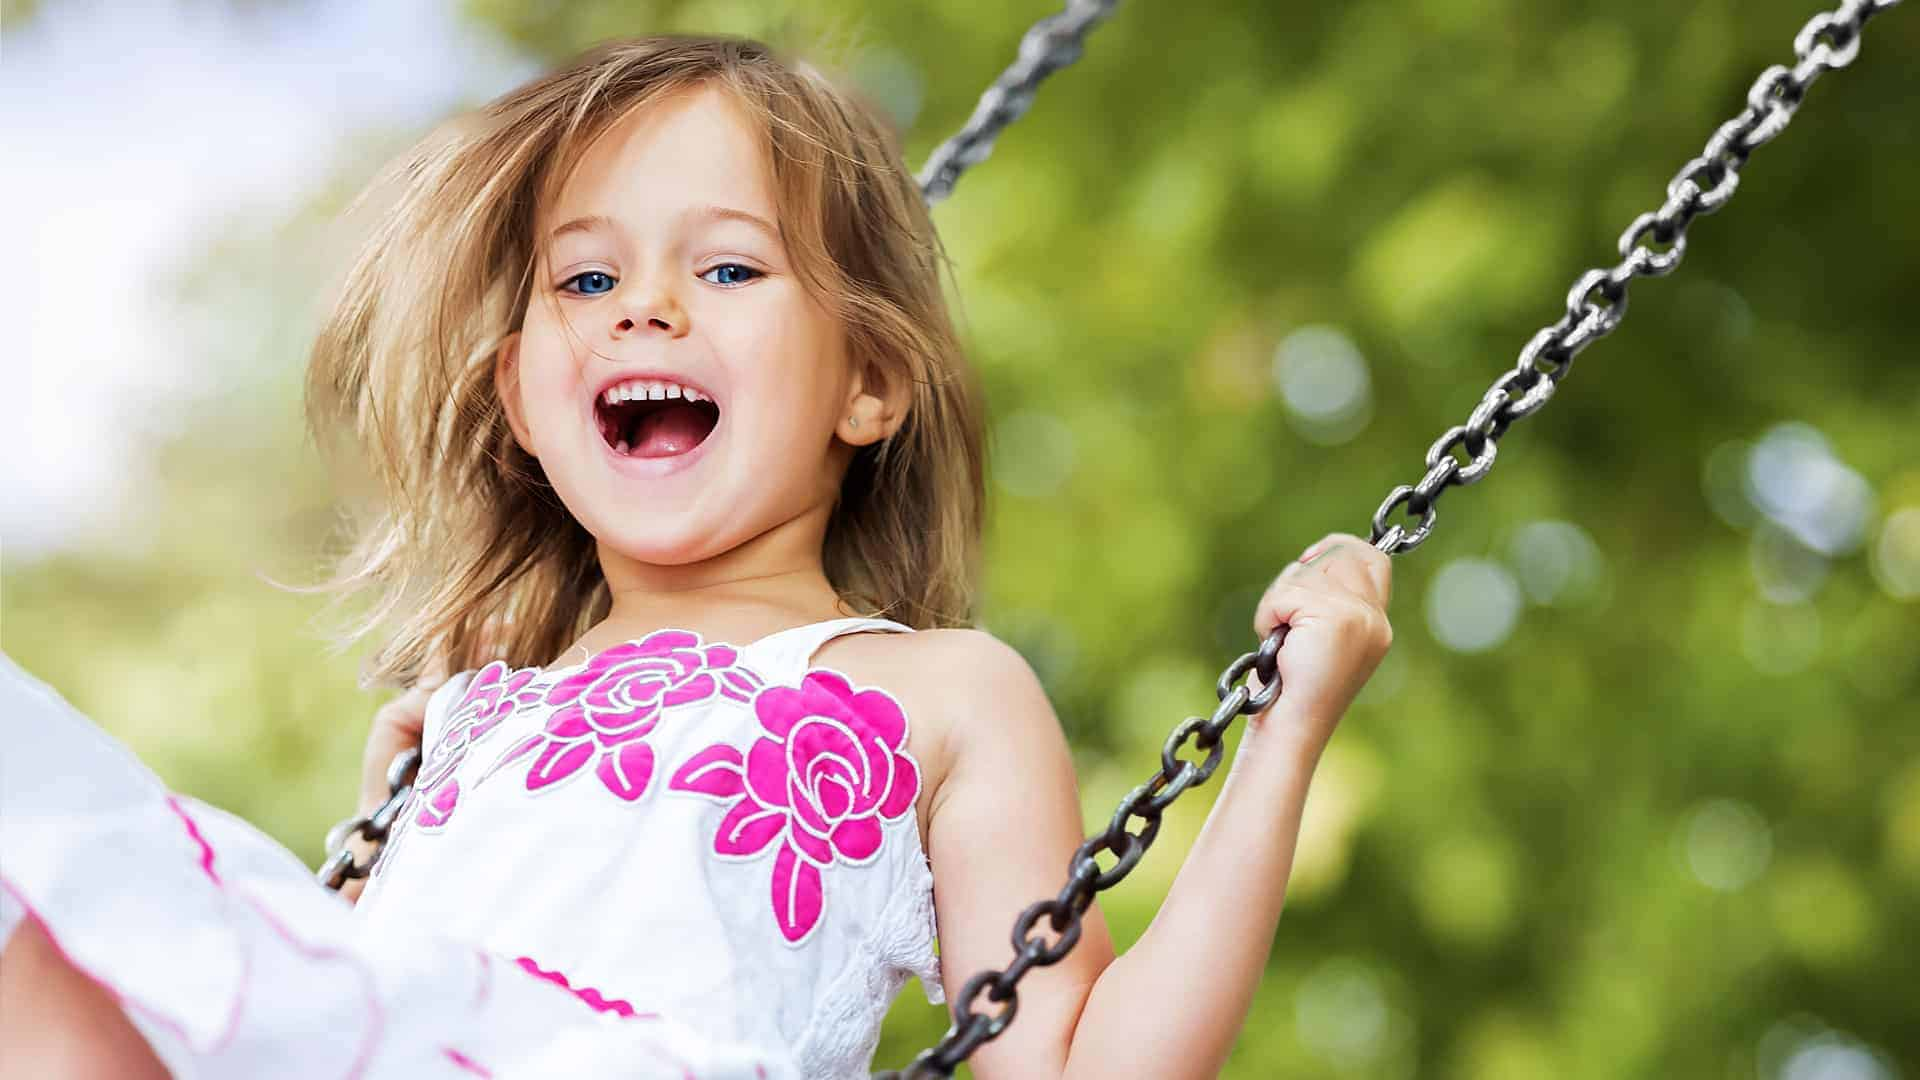 image of happy young girl on a swing